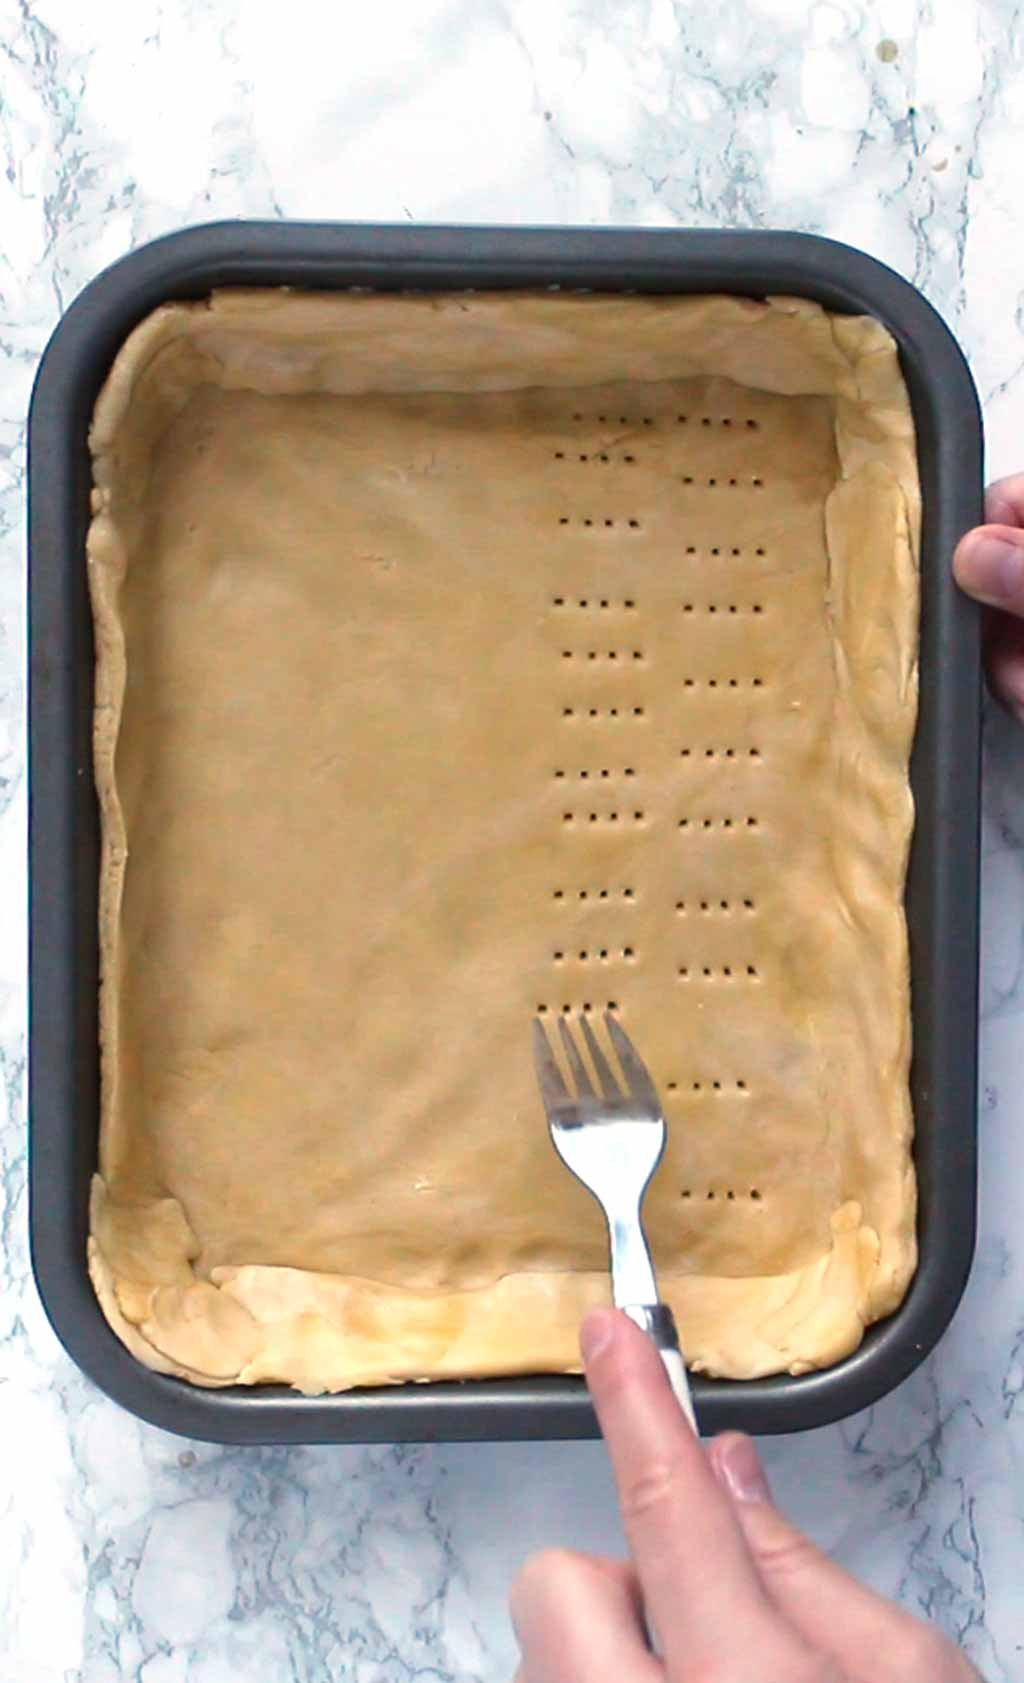 Docking the pastry with a fork